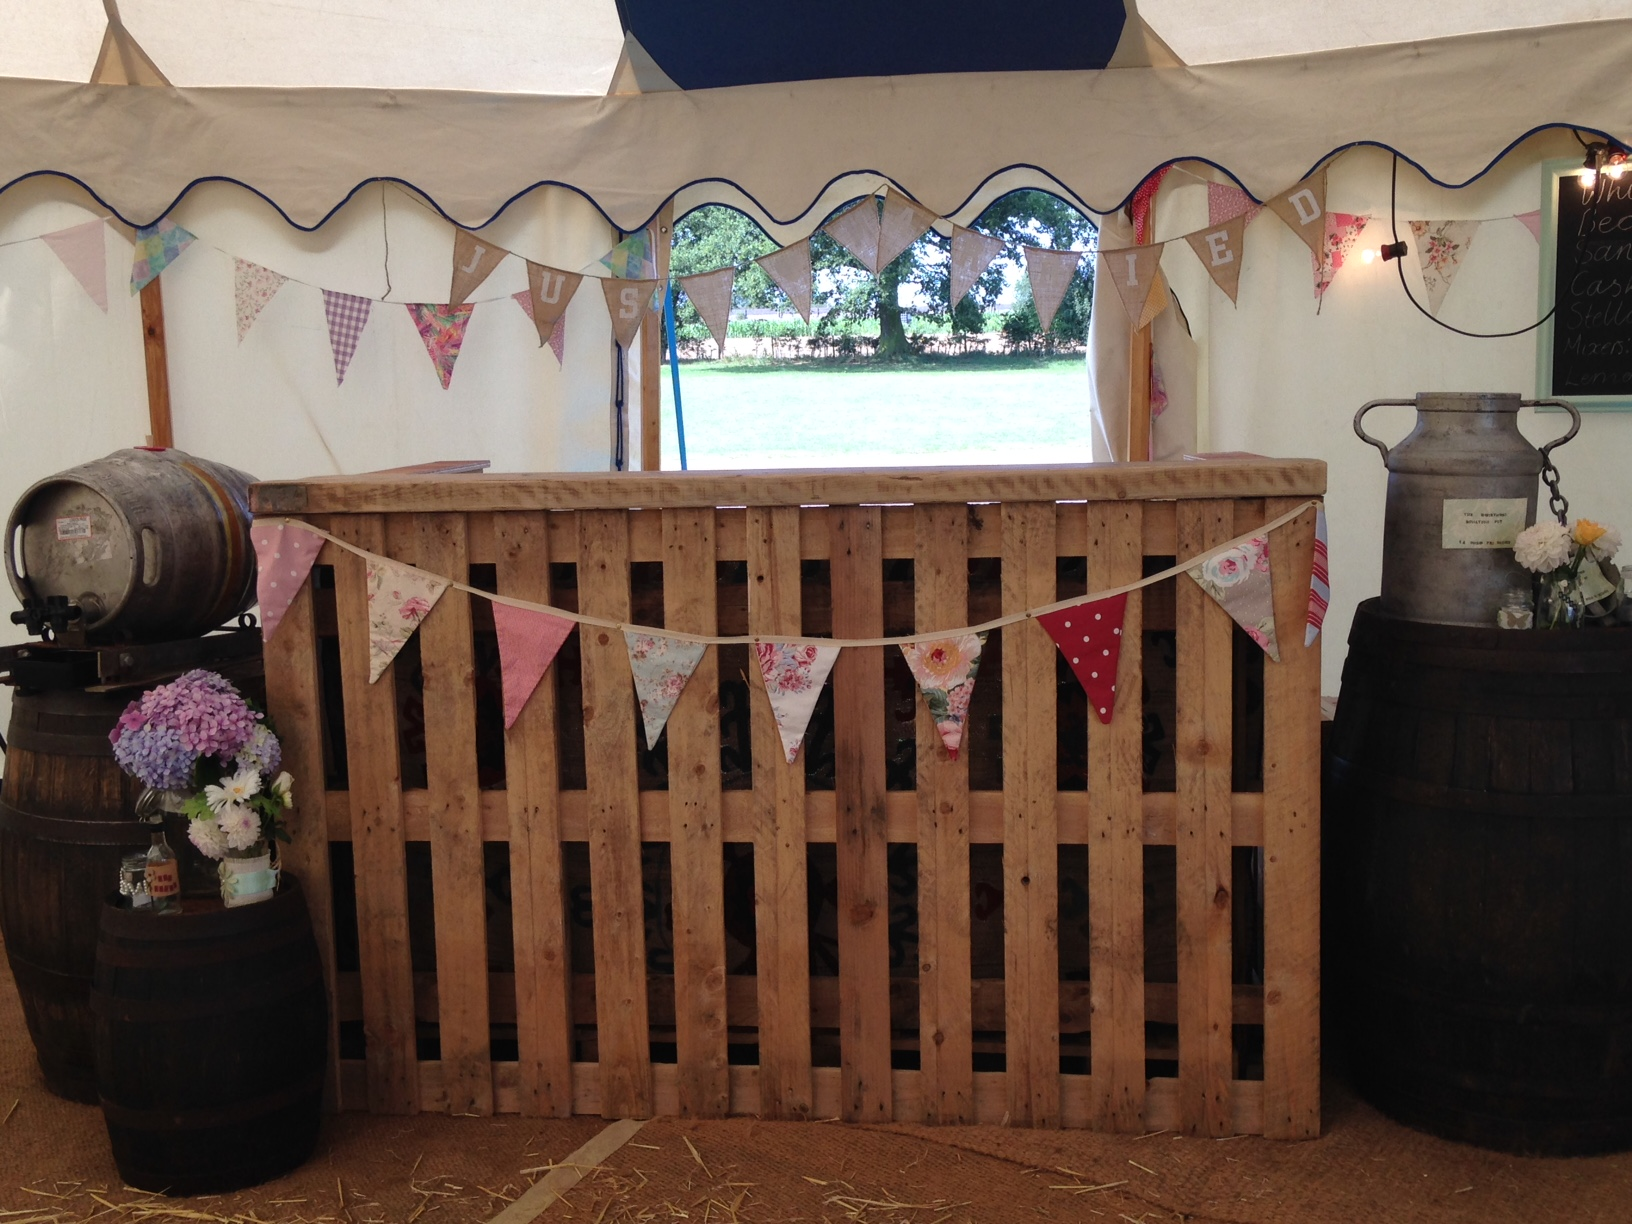 Pallet Bar made by Groom - Brook Farm Wedding